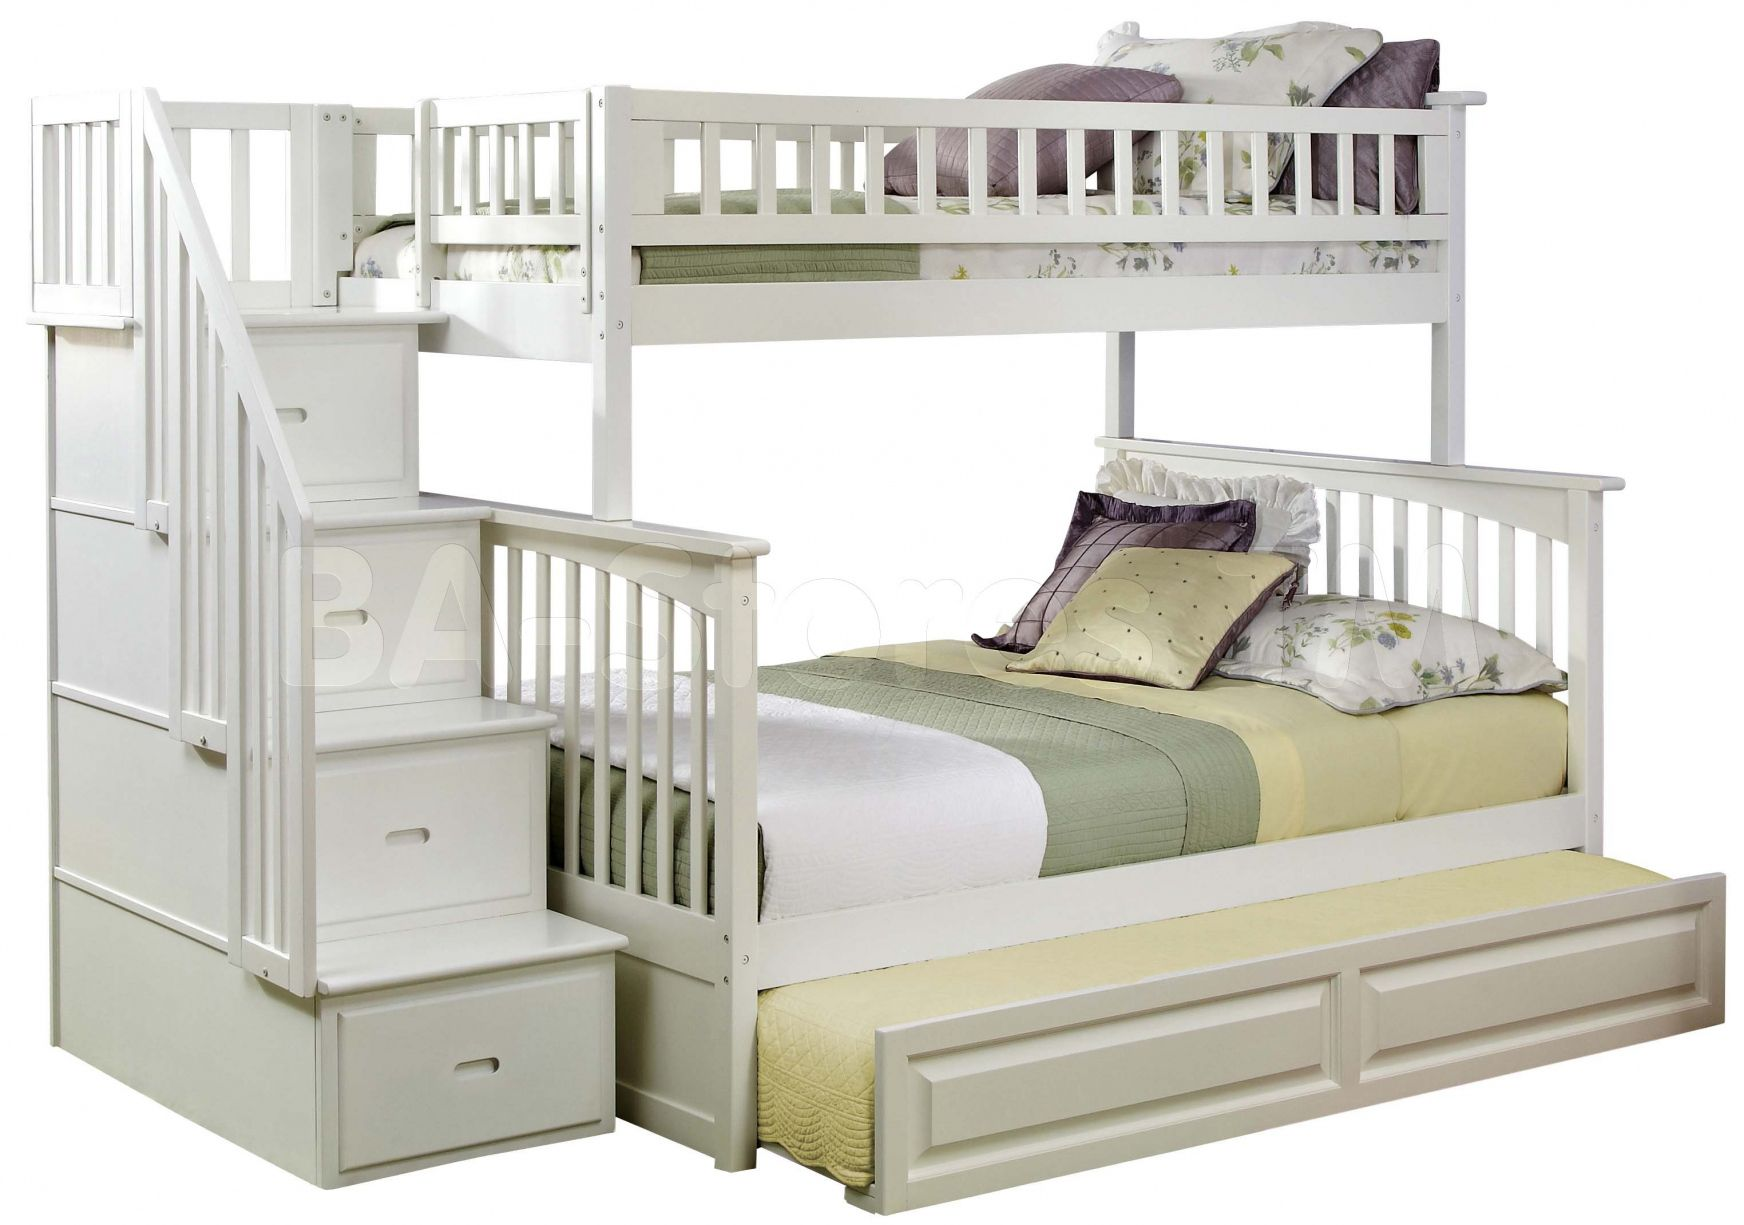 20 Cheap Bunk Beds For Kids With Mattress Interior Design Bedroom Ideas Check More At Http Bunk Beds With Storage Staircase Bunk Bed Bunk Bed With Trundle